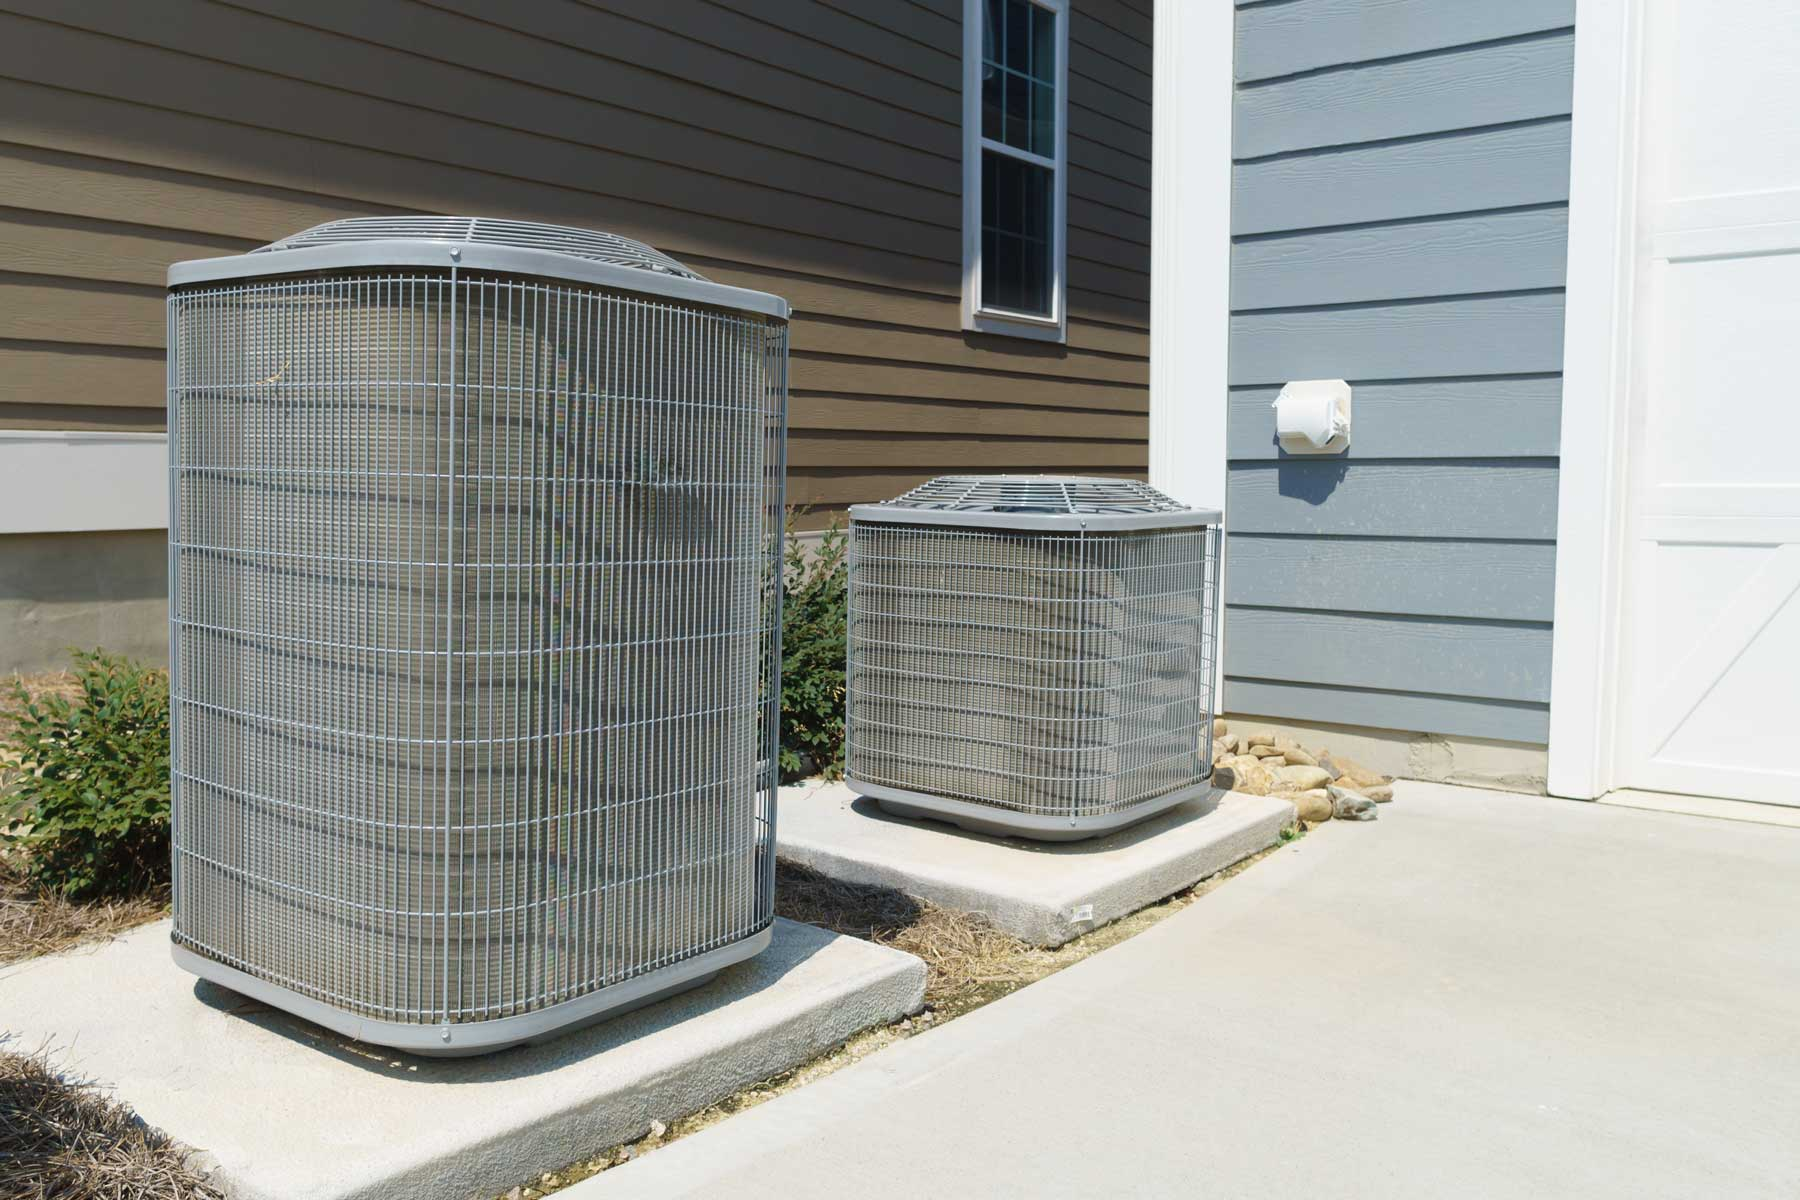 Photo of air conditioning units